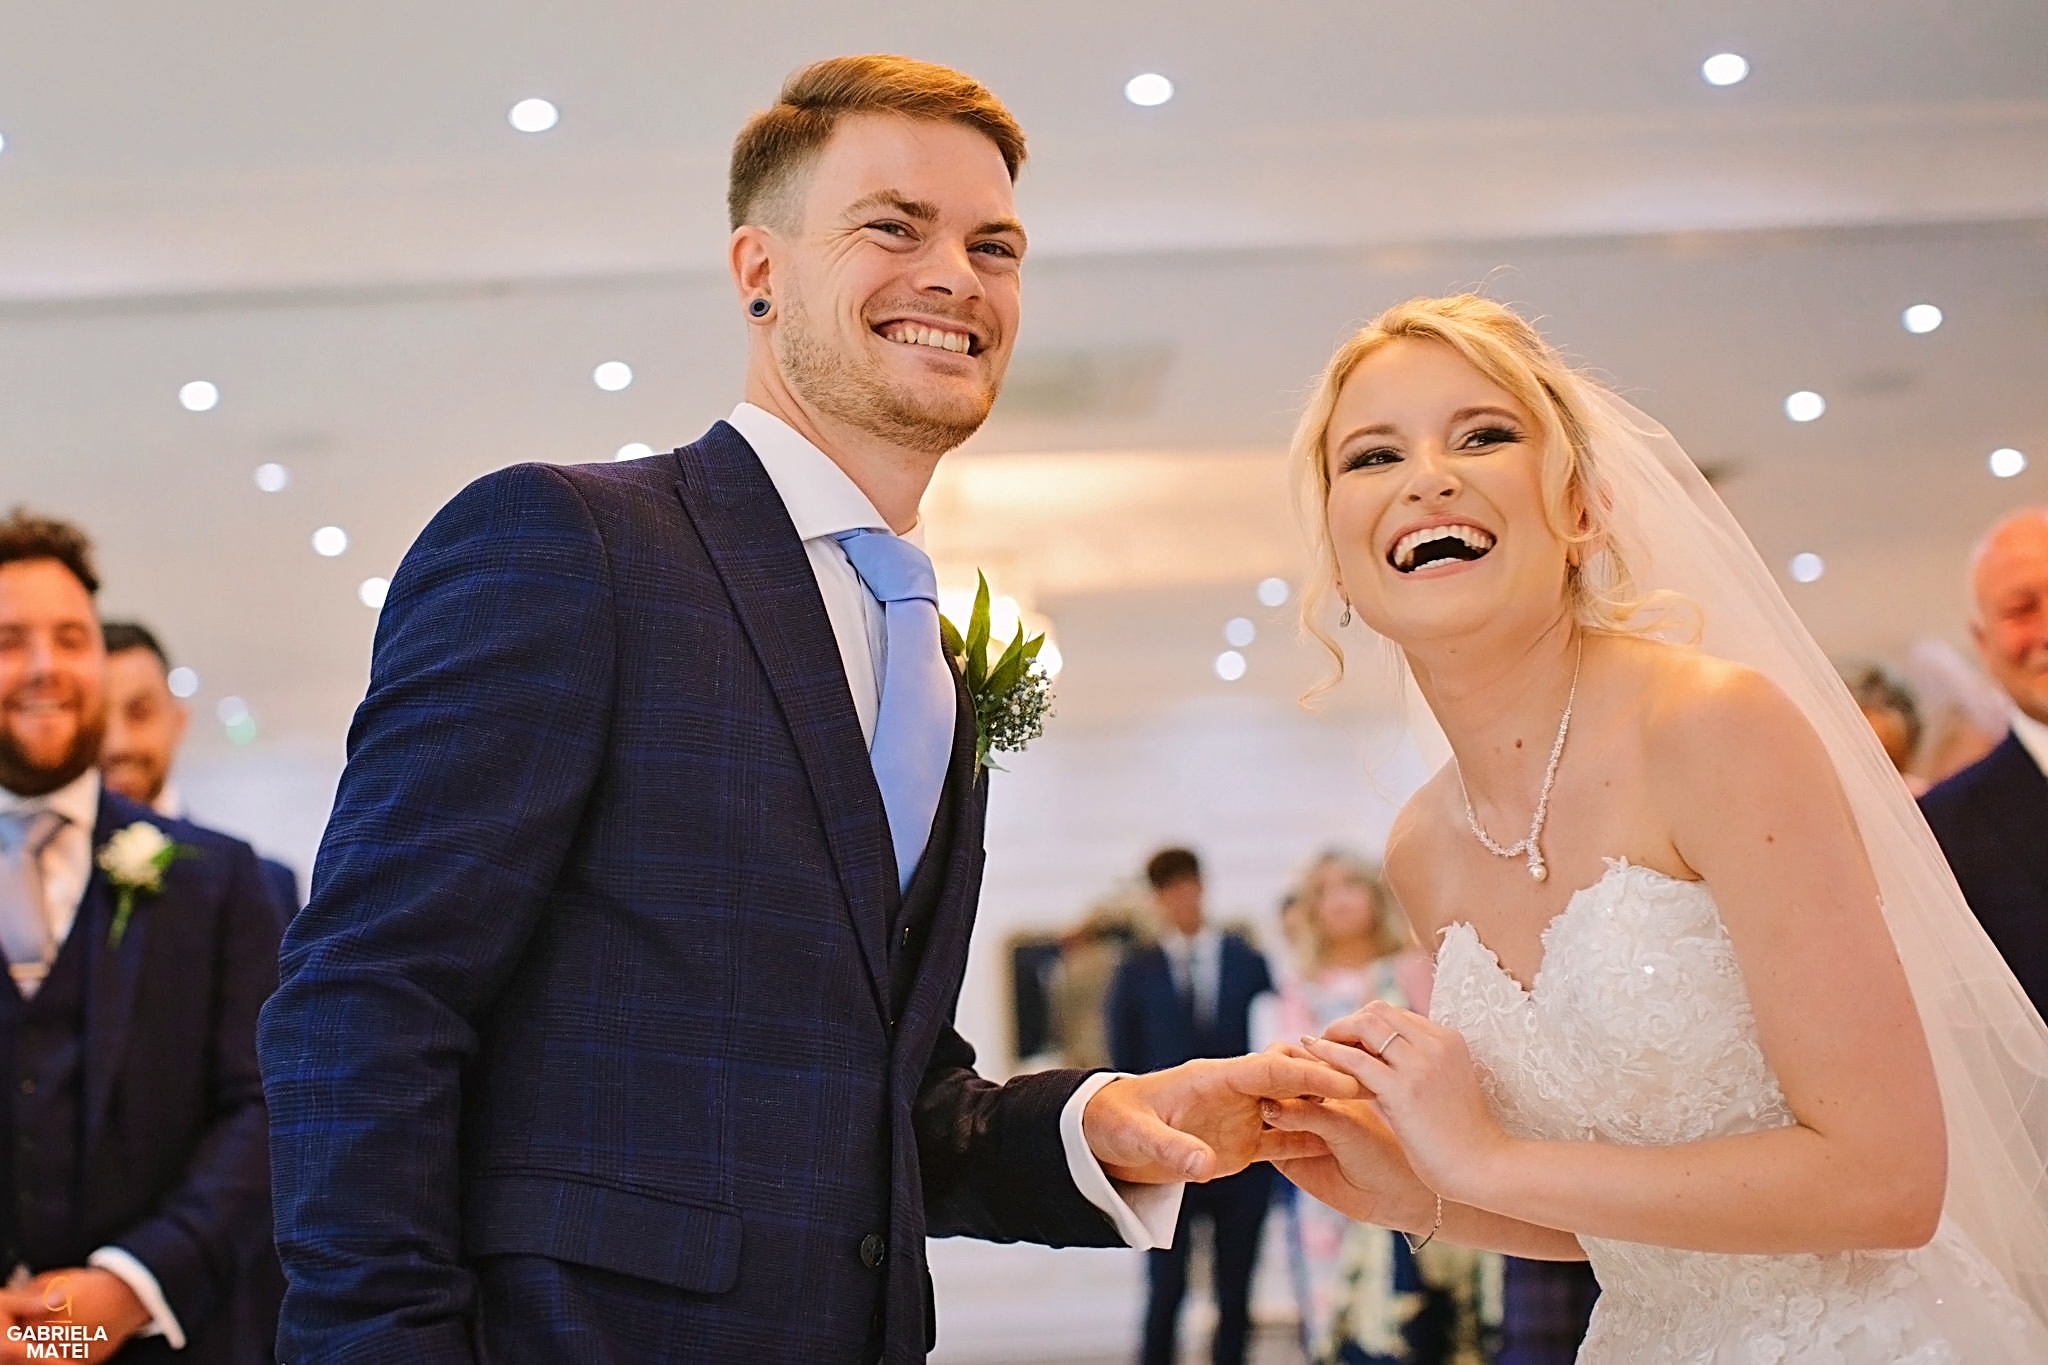 Bride and groom laughing during ring exchange vows